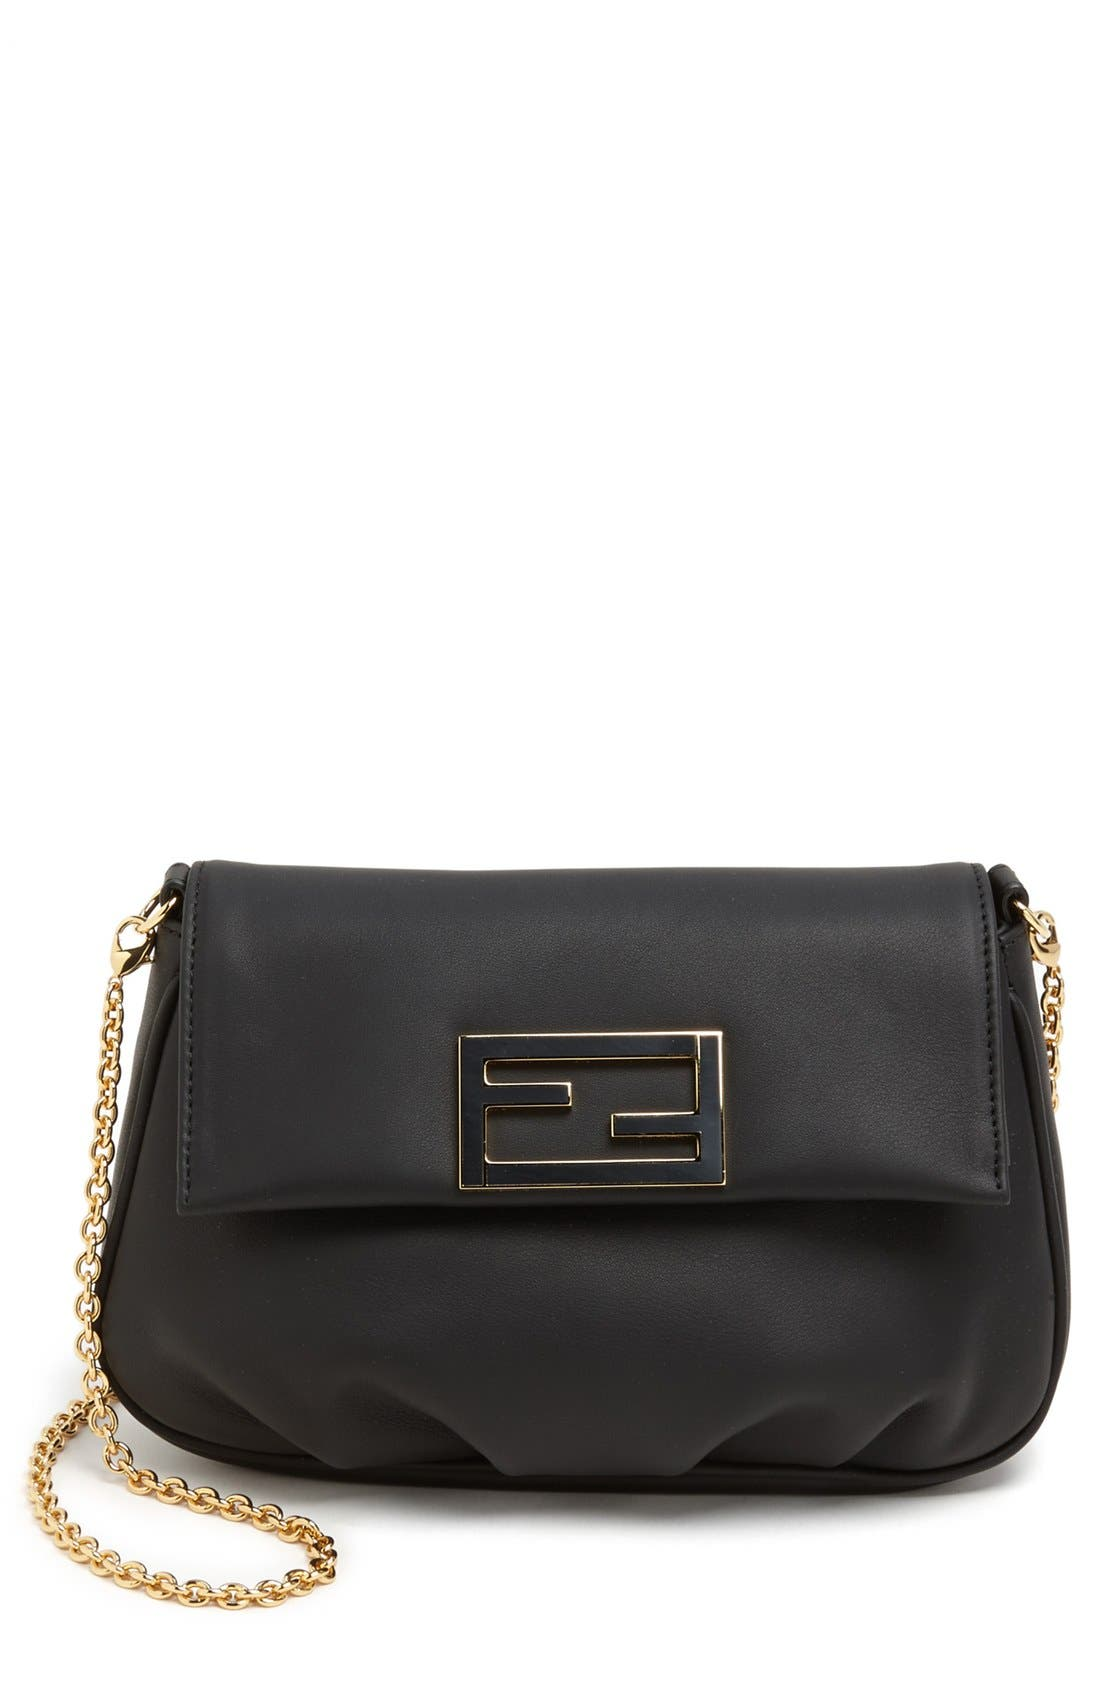 Alternate Image 1 Selected - Fendi 'Fendista' Pouchette Crossbody Bag